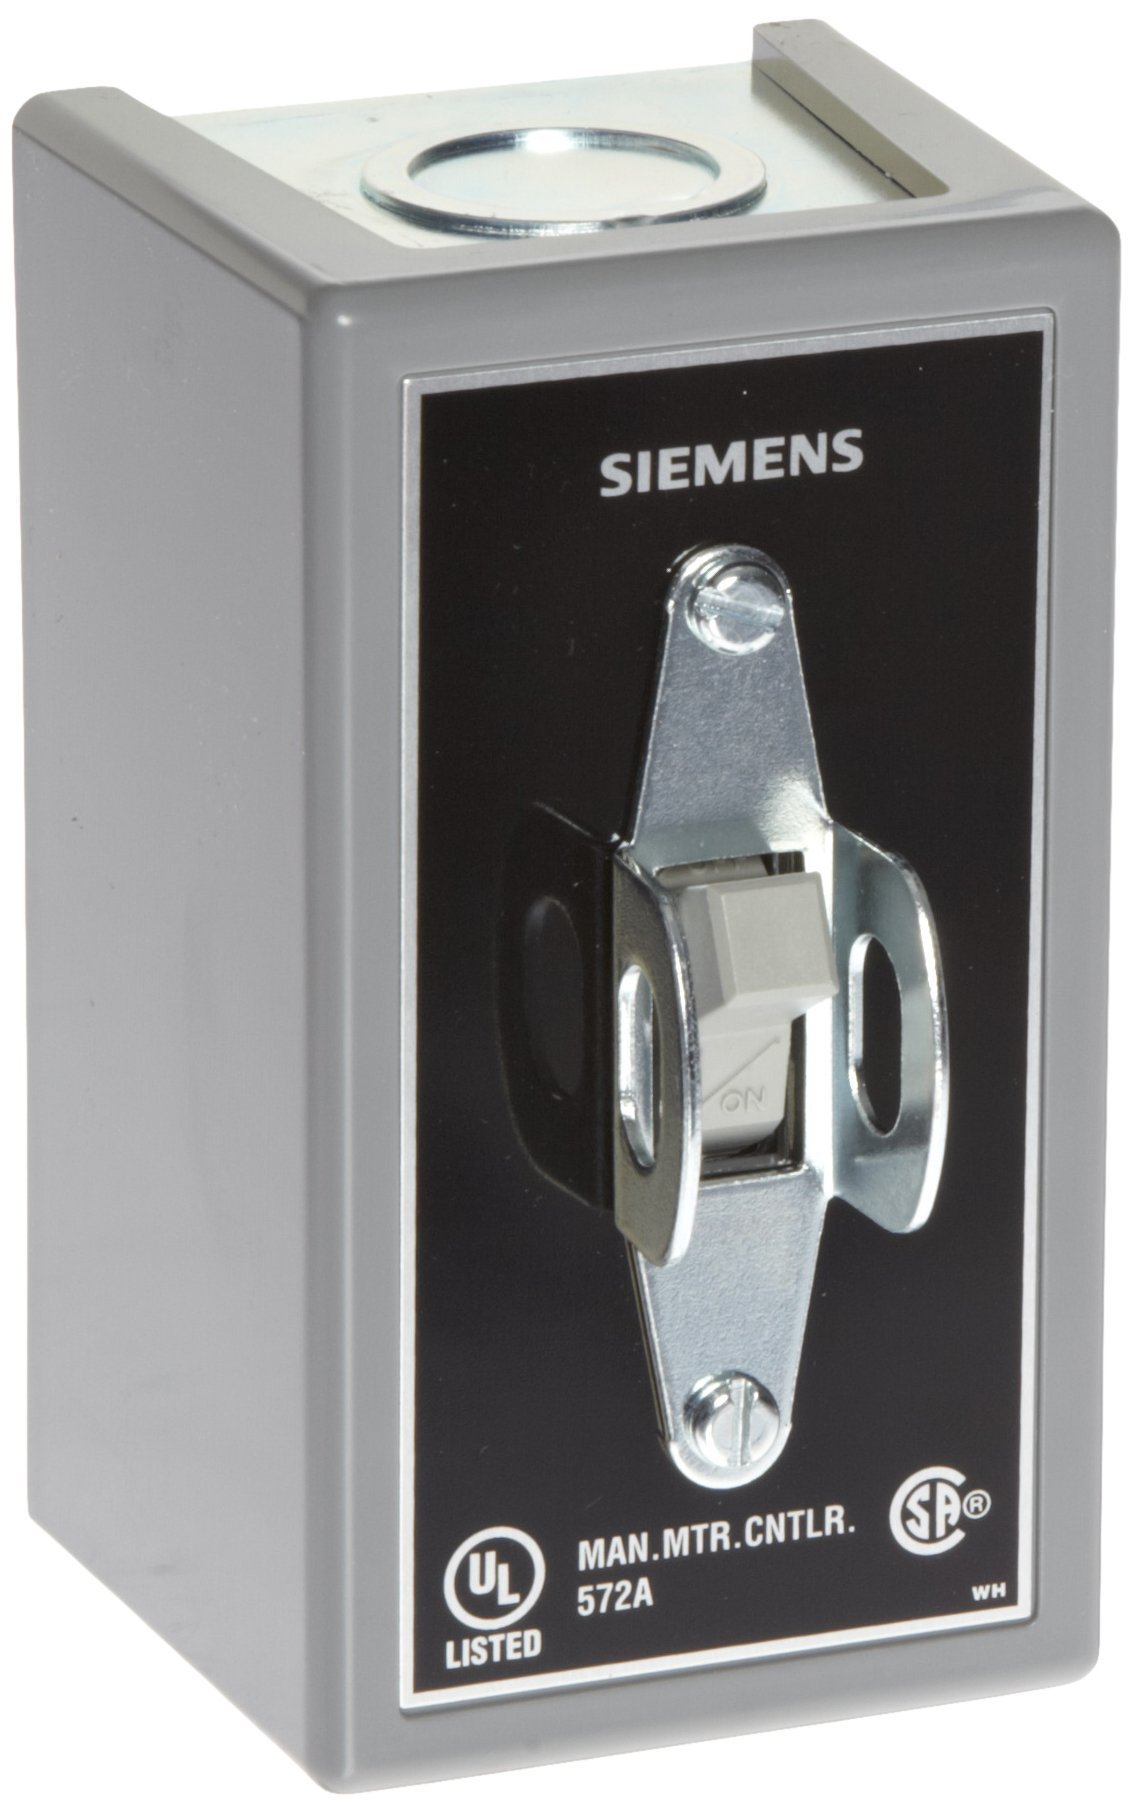 Siemens MMSKG1 Fractional HP Switch, Single and 3 Phase, NEMA Type 1 General Purpose Enclosure, Surface Mounting, Toggle Operator Type, Standard Switch Feature, 2 Poles